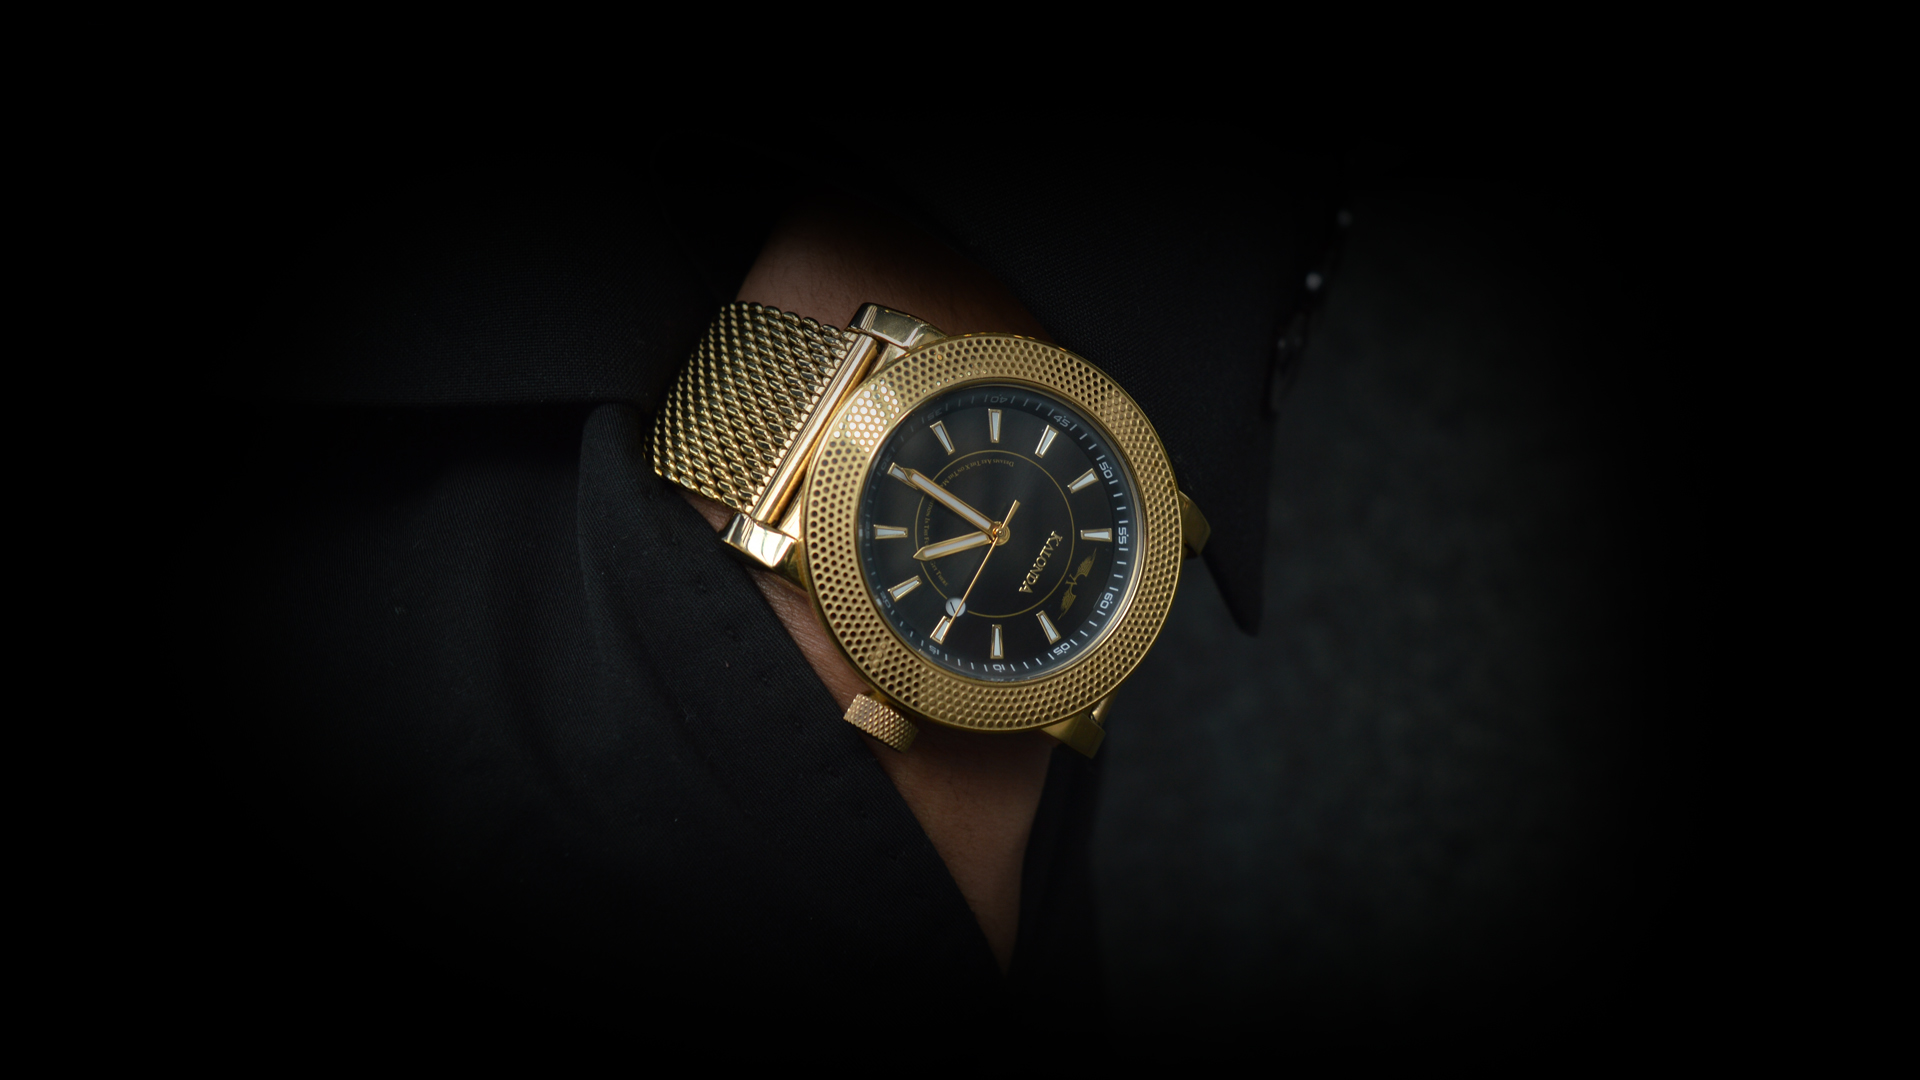 Kalonda - The Royal Gold Watch in suit pocket